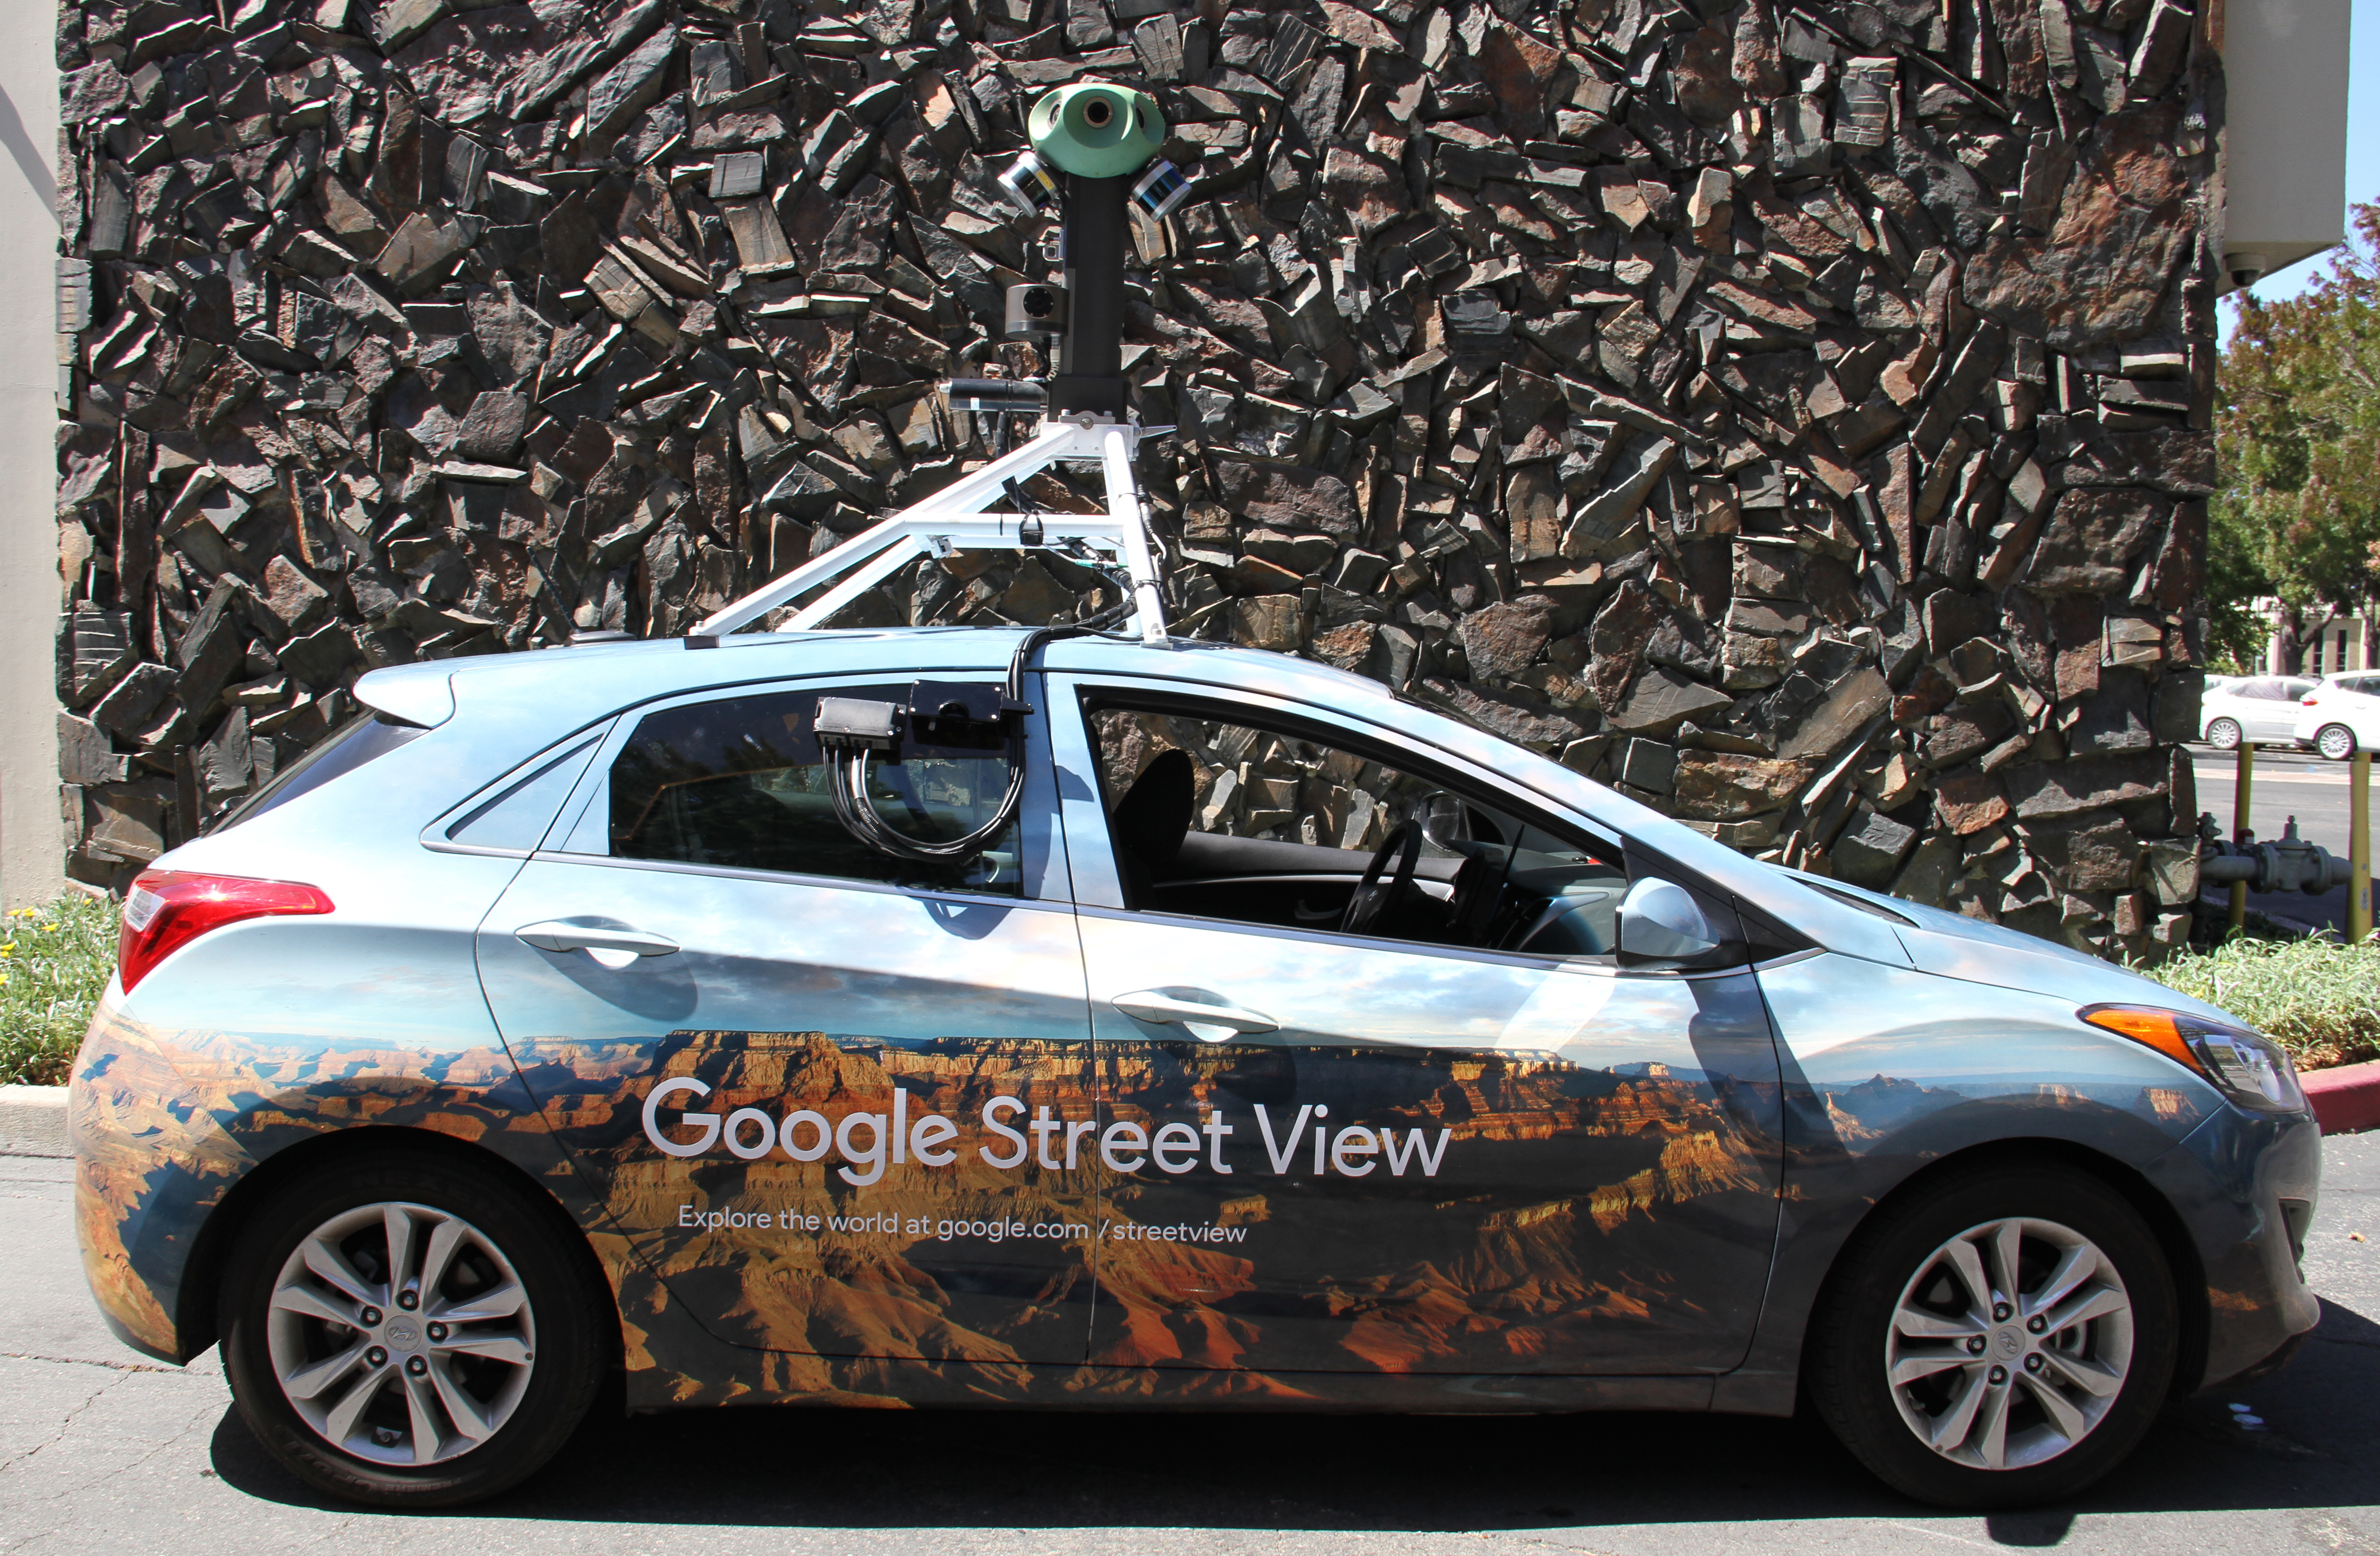 Google Street View cars will be roaming around the planet to